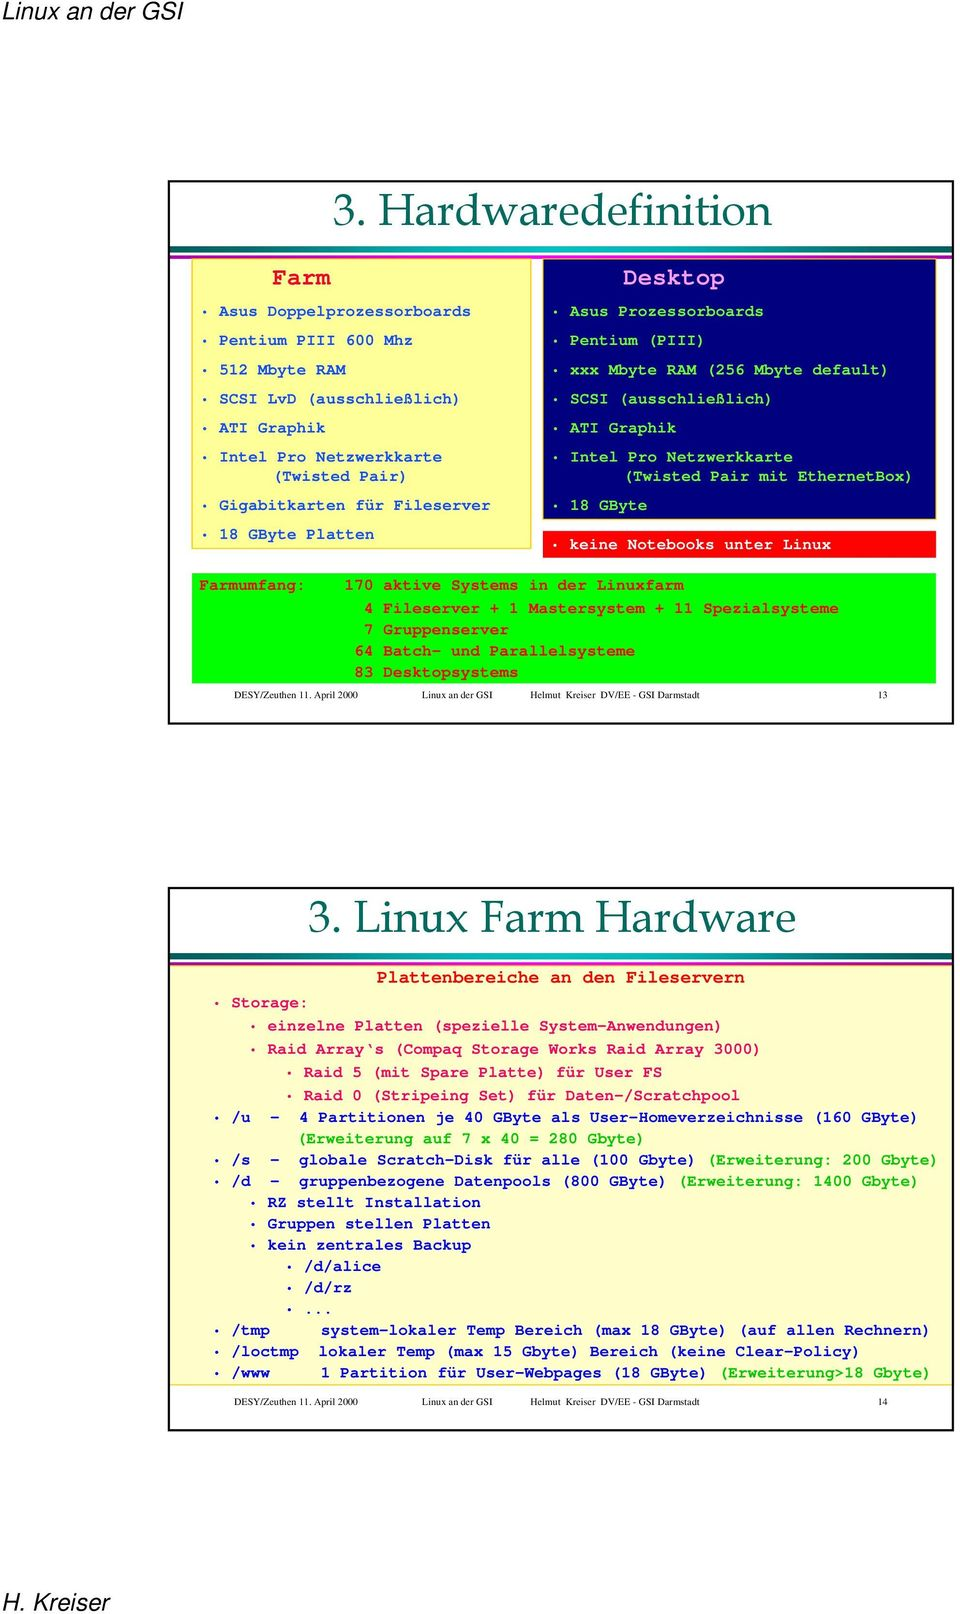 Notebooks unter Linux Farmumfang: 170 aktive Systems in der Linuxfarm 4 Fileserver + 1 Mastersystem + 11 Spezialsysteme 7 Gruppenserver 64 Batch- und Parallelsysteme 83 Desktopsystems DESY/Zeuthen 11.